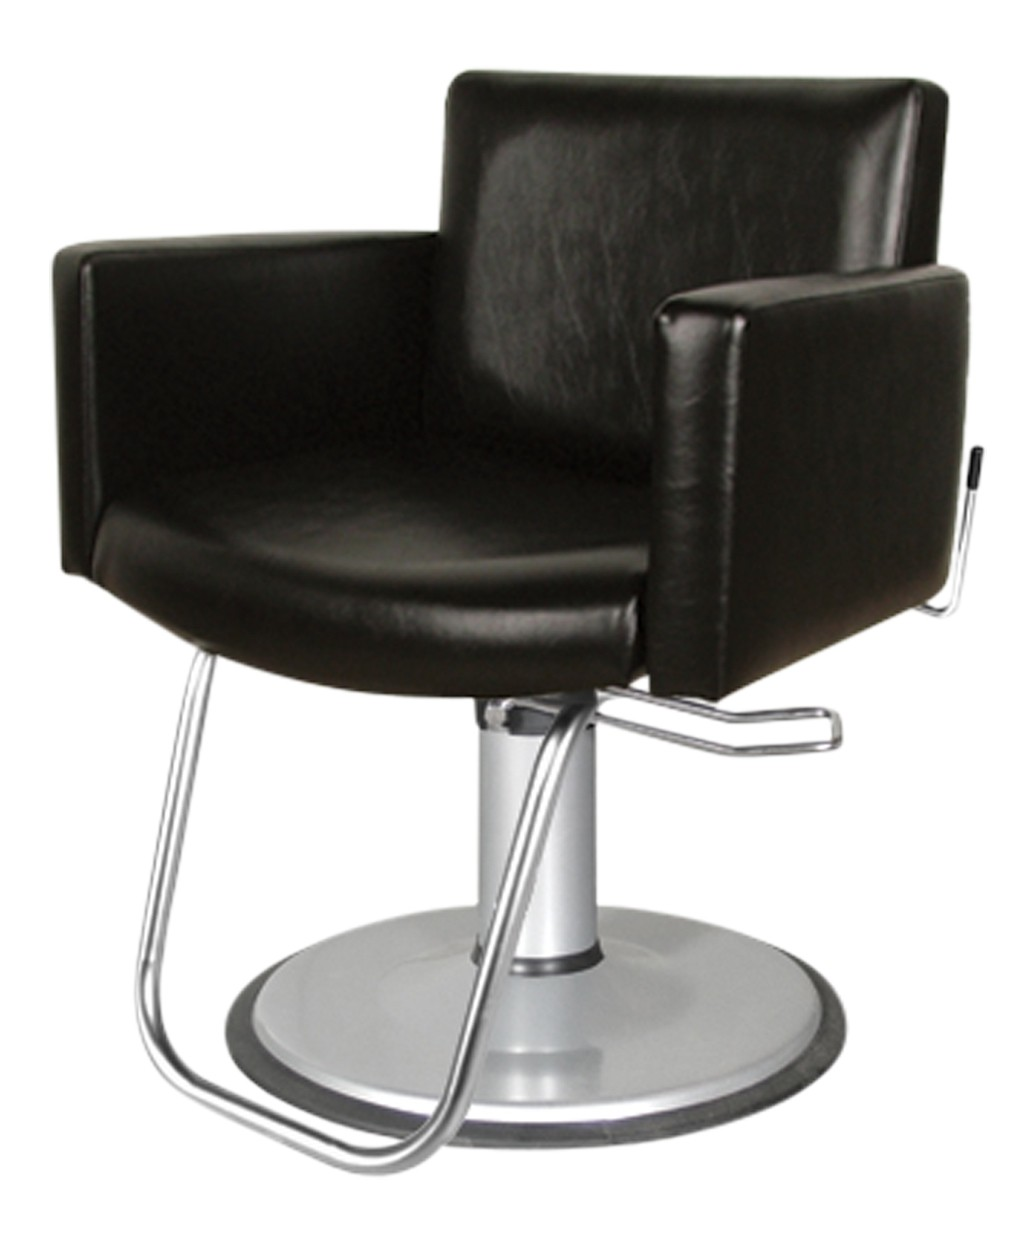 6910 Cigno All Purpose Chair